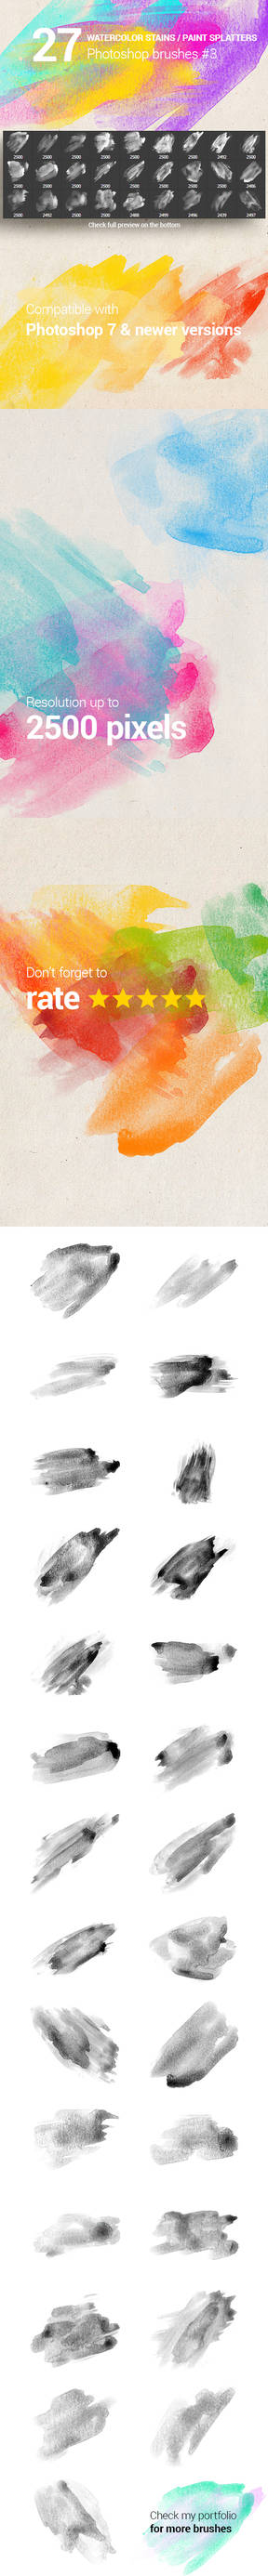 27 Watercolor Paint Stains Photoshop Brushes #3